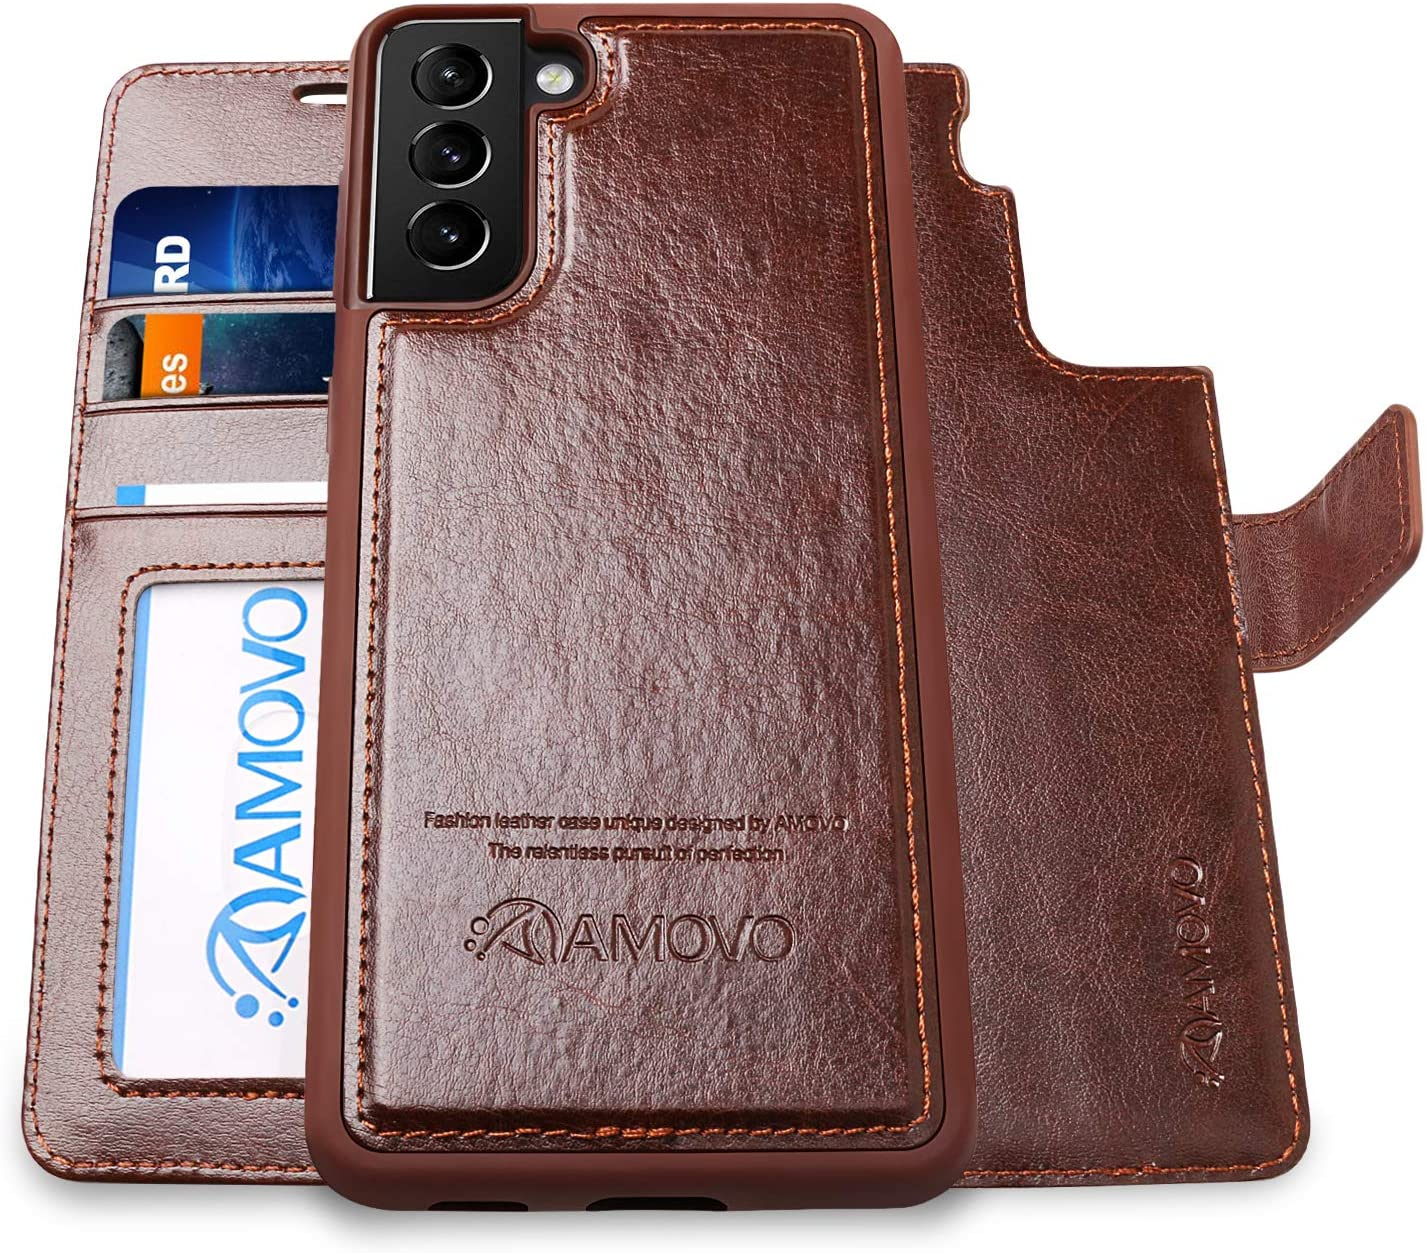 AMOVO Wallet Case for Samsung Galaxy S21 Plus [2 in 1Detachable] Leather Flip Case [Vegan Leather][Card Slot][Magnetic Clasp] Protective Case Cover for Galaxy S21+ (6.7'') (Brown)